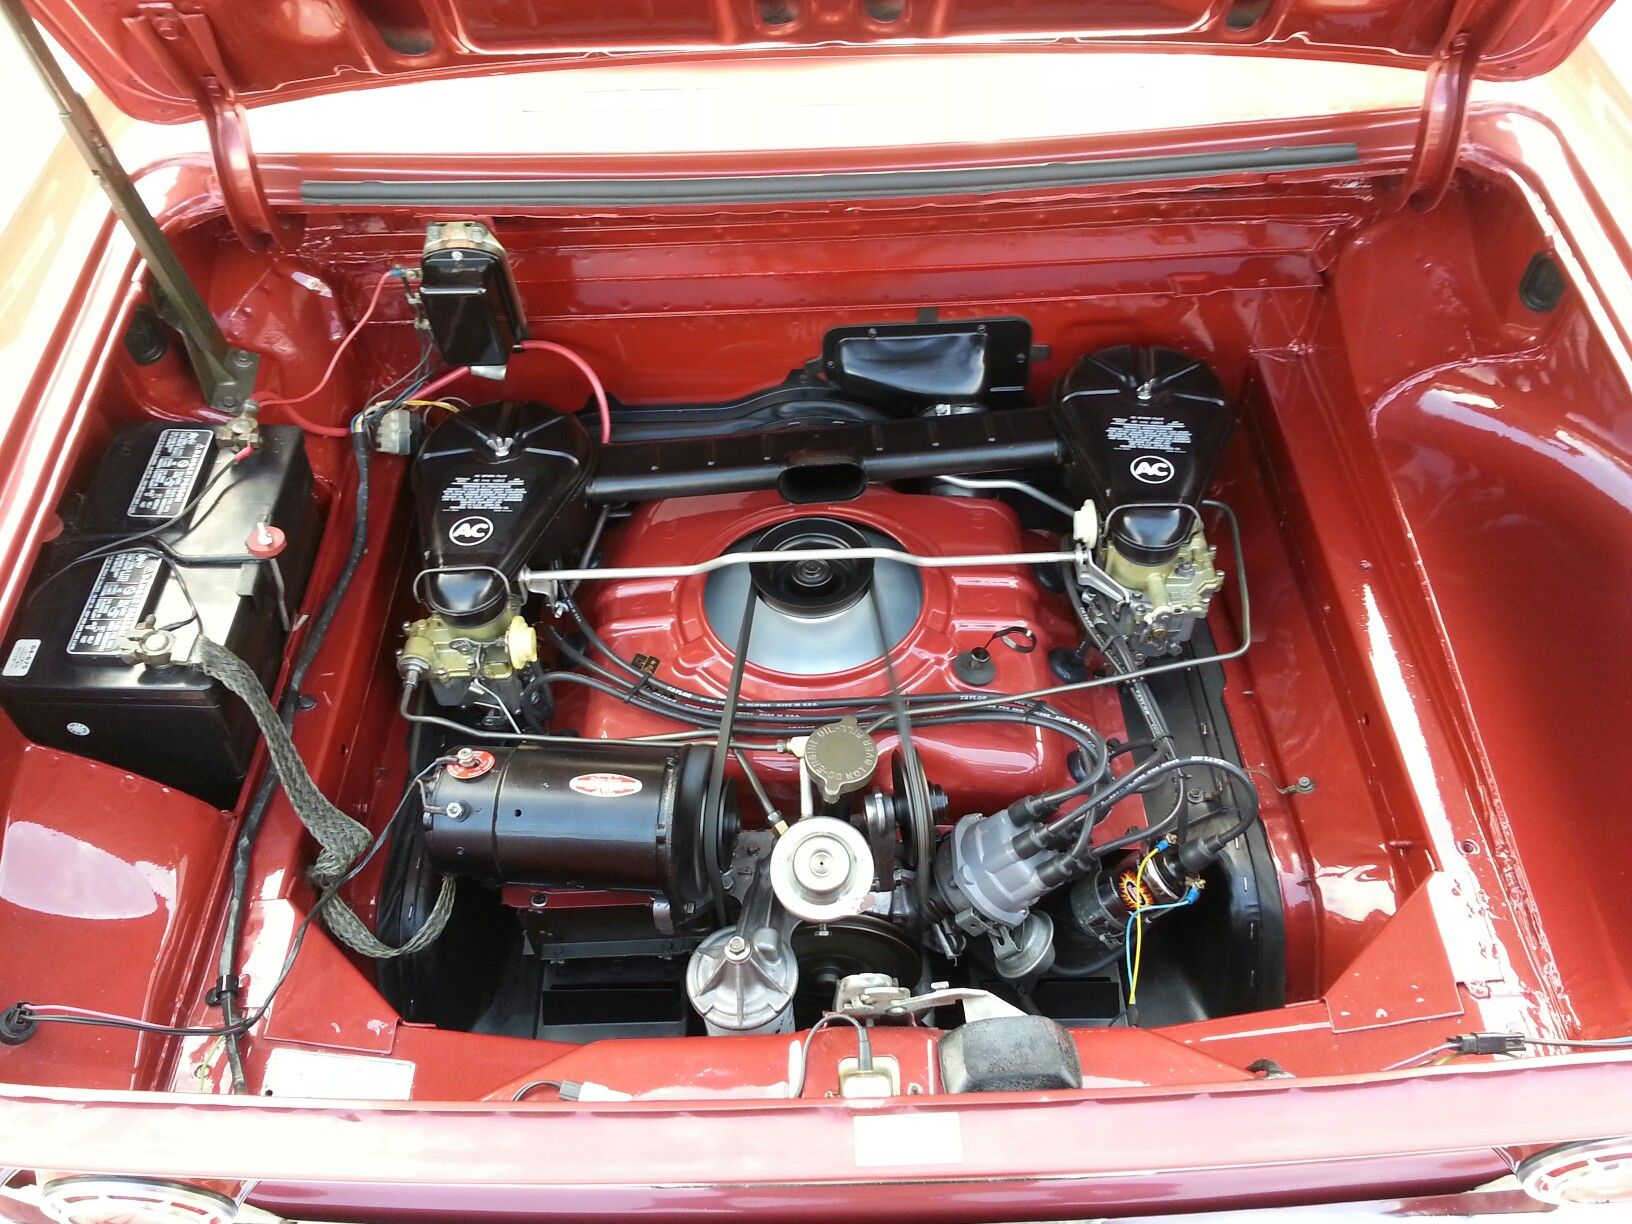 62 Corvair Monza 900 | Cars Corvair | Pinterest | Cars, Engine and ...